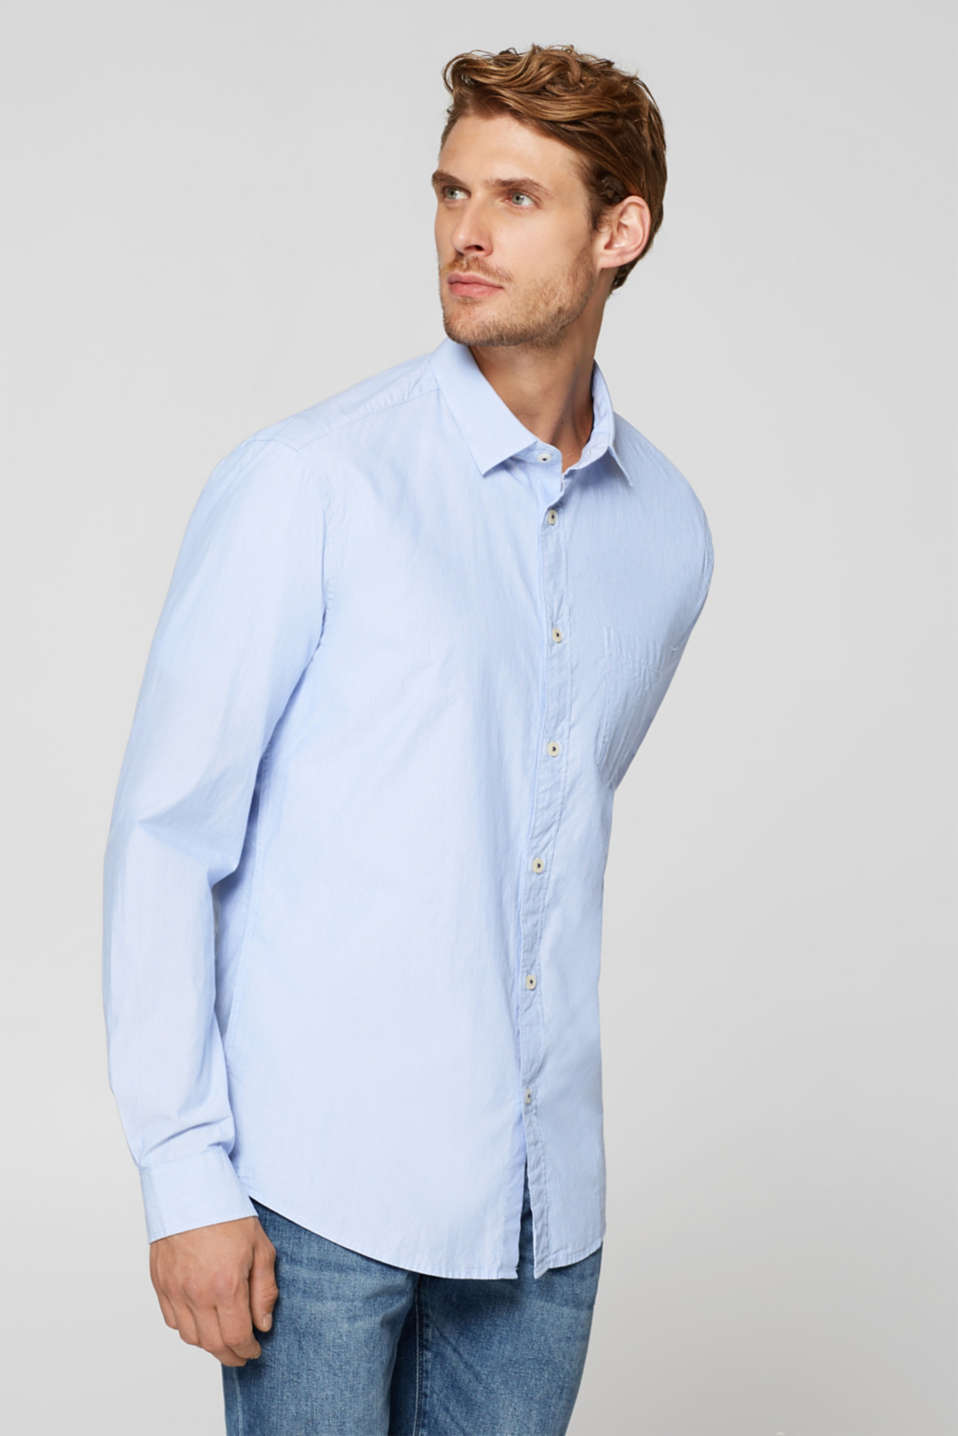 Esprit - Finely striped shirt made of organic cotton